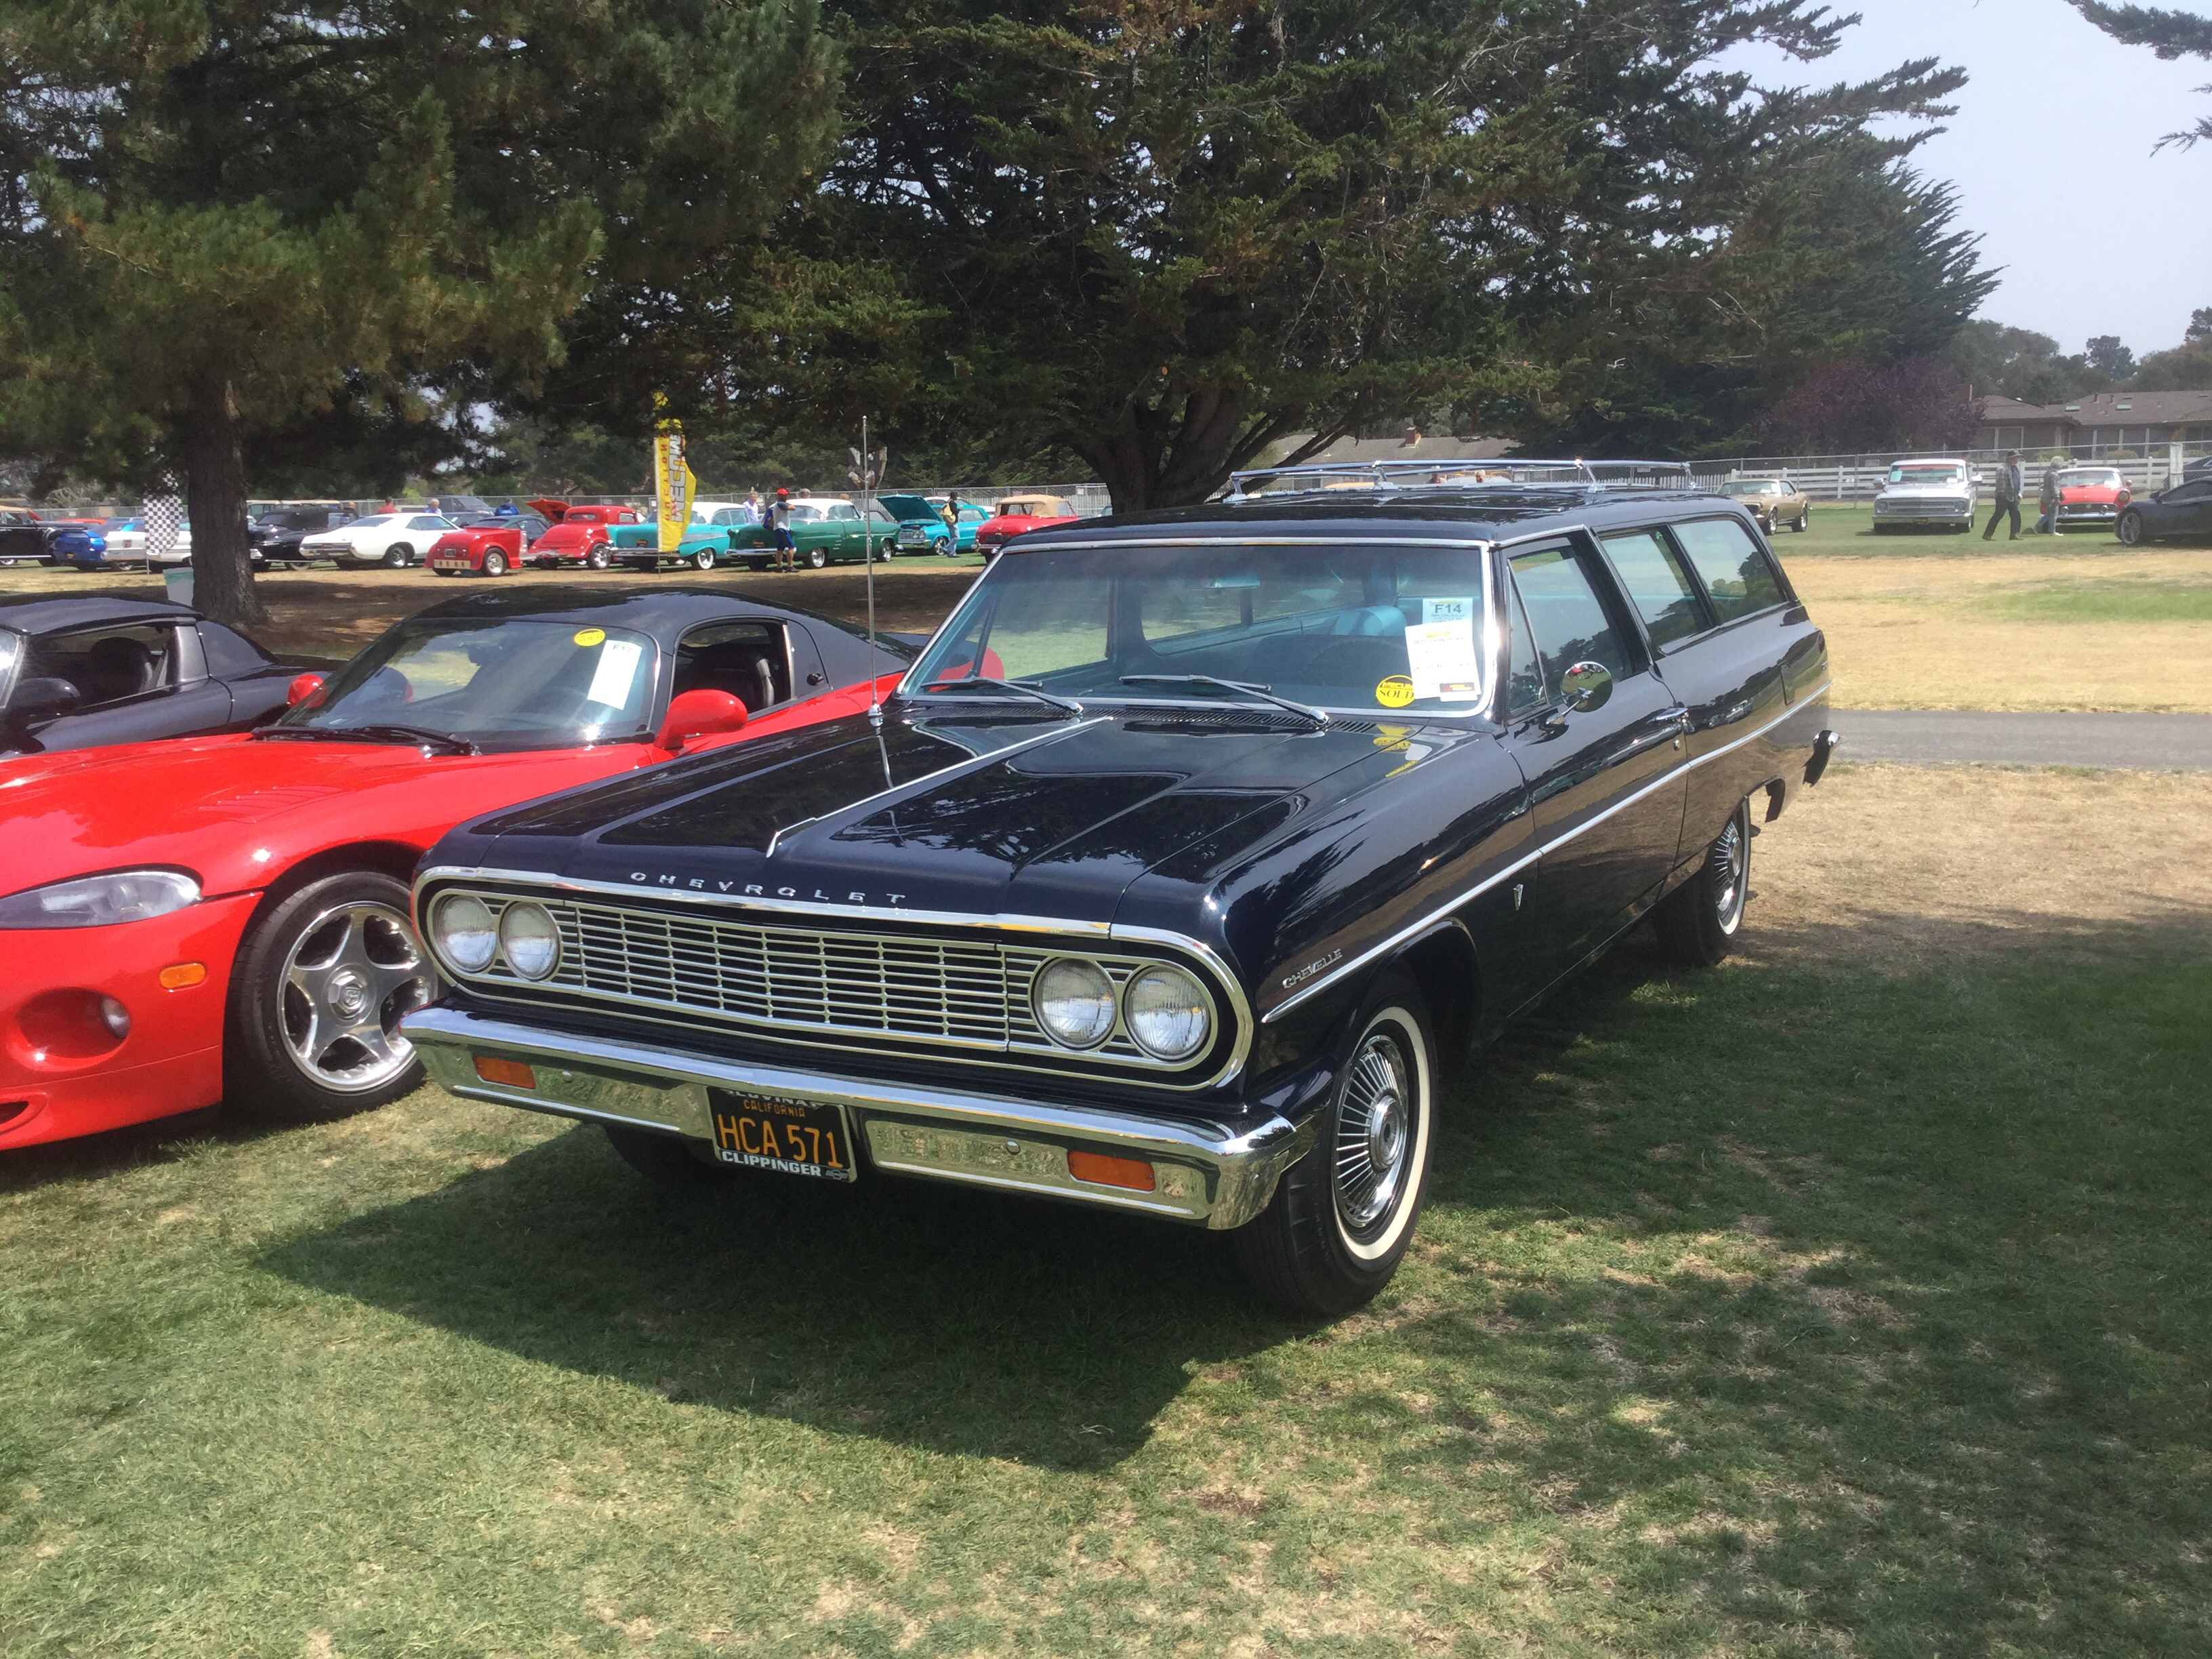 1964 Chevrolet Chevelle 300 Values | Hagerty Valuation Tool®